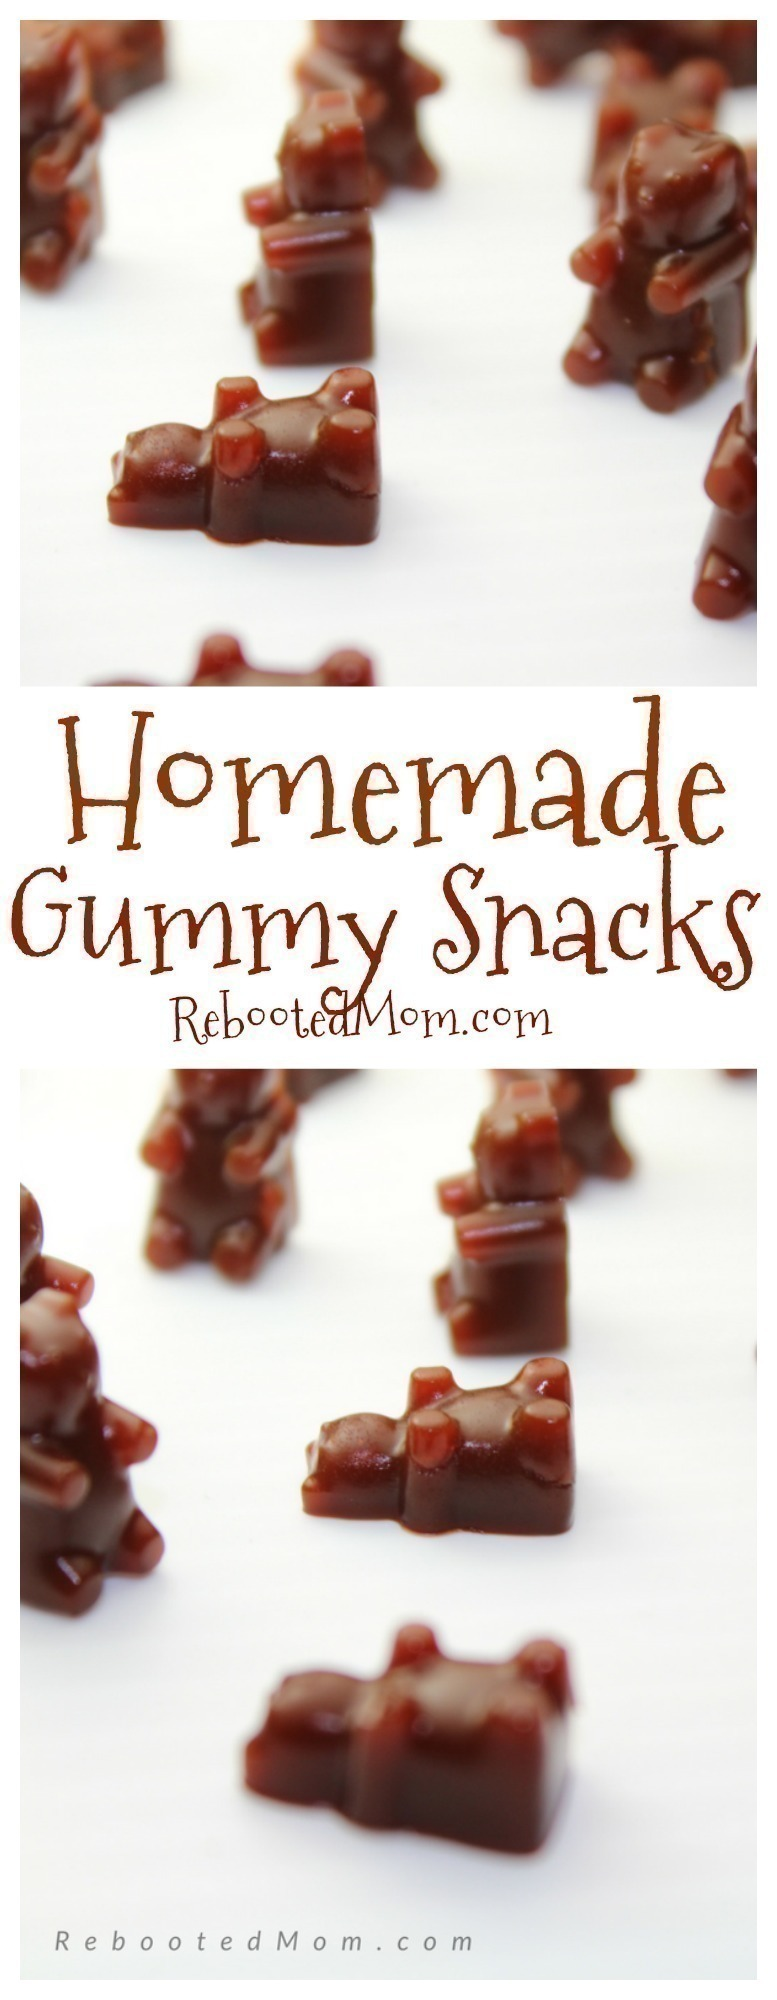 These homemade fruit snacks are SO easy to make - and incredibly healthy!